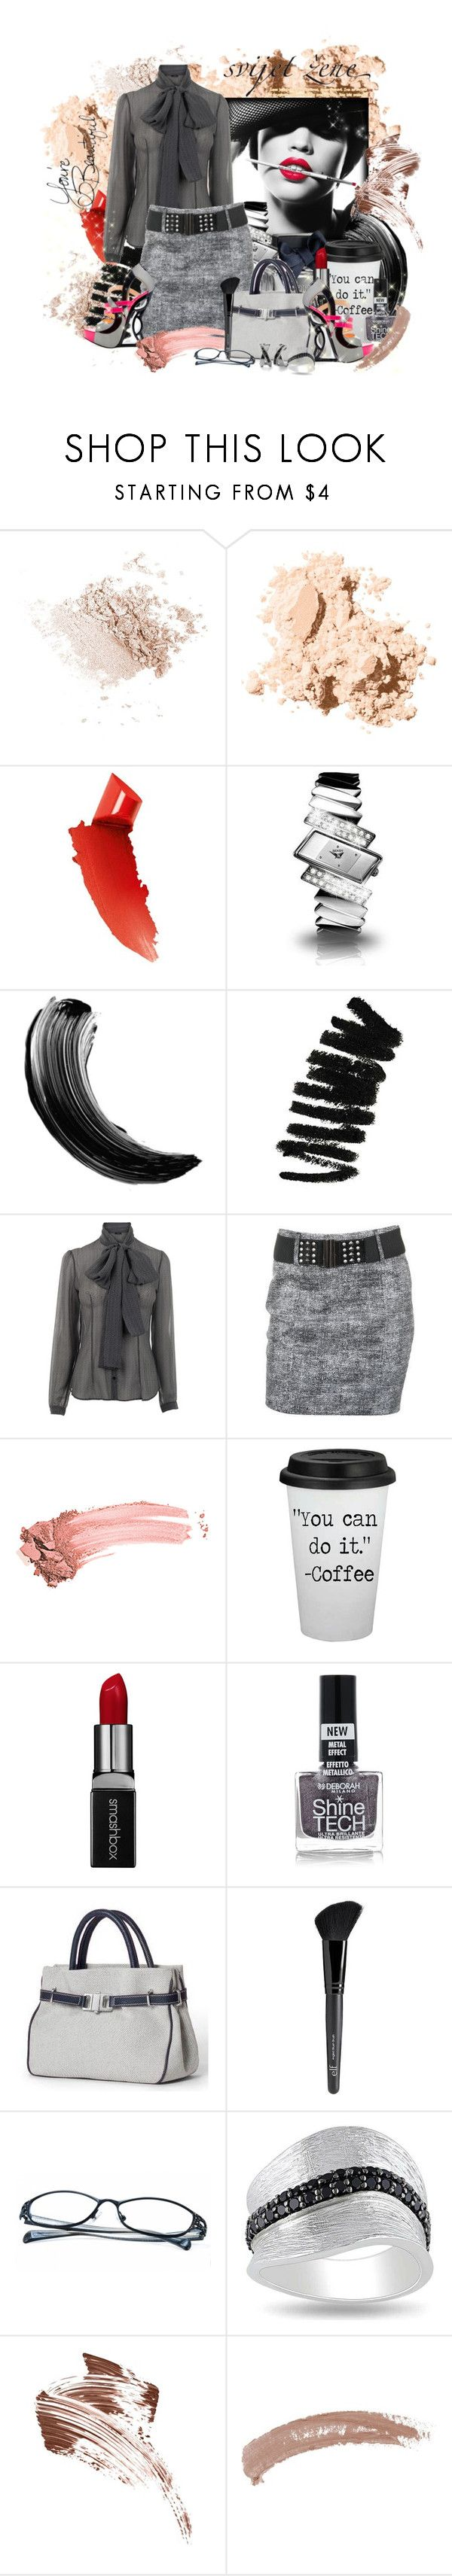 """Svijet Žene"" by mrkyblu ❤ liked on Polyvore featuring Topshop, Bobbi Brown Cosmetics, MAKE UP FOR EVER, By Terry, Maybelline, Joseph, Metropark, Vs2R, Elizabeth Arden and Abercrombie & Fitch"